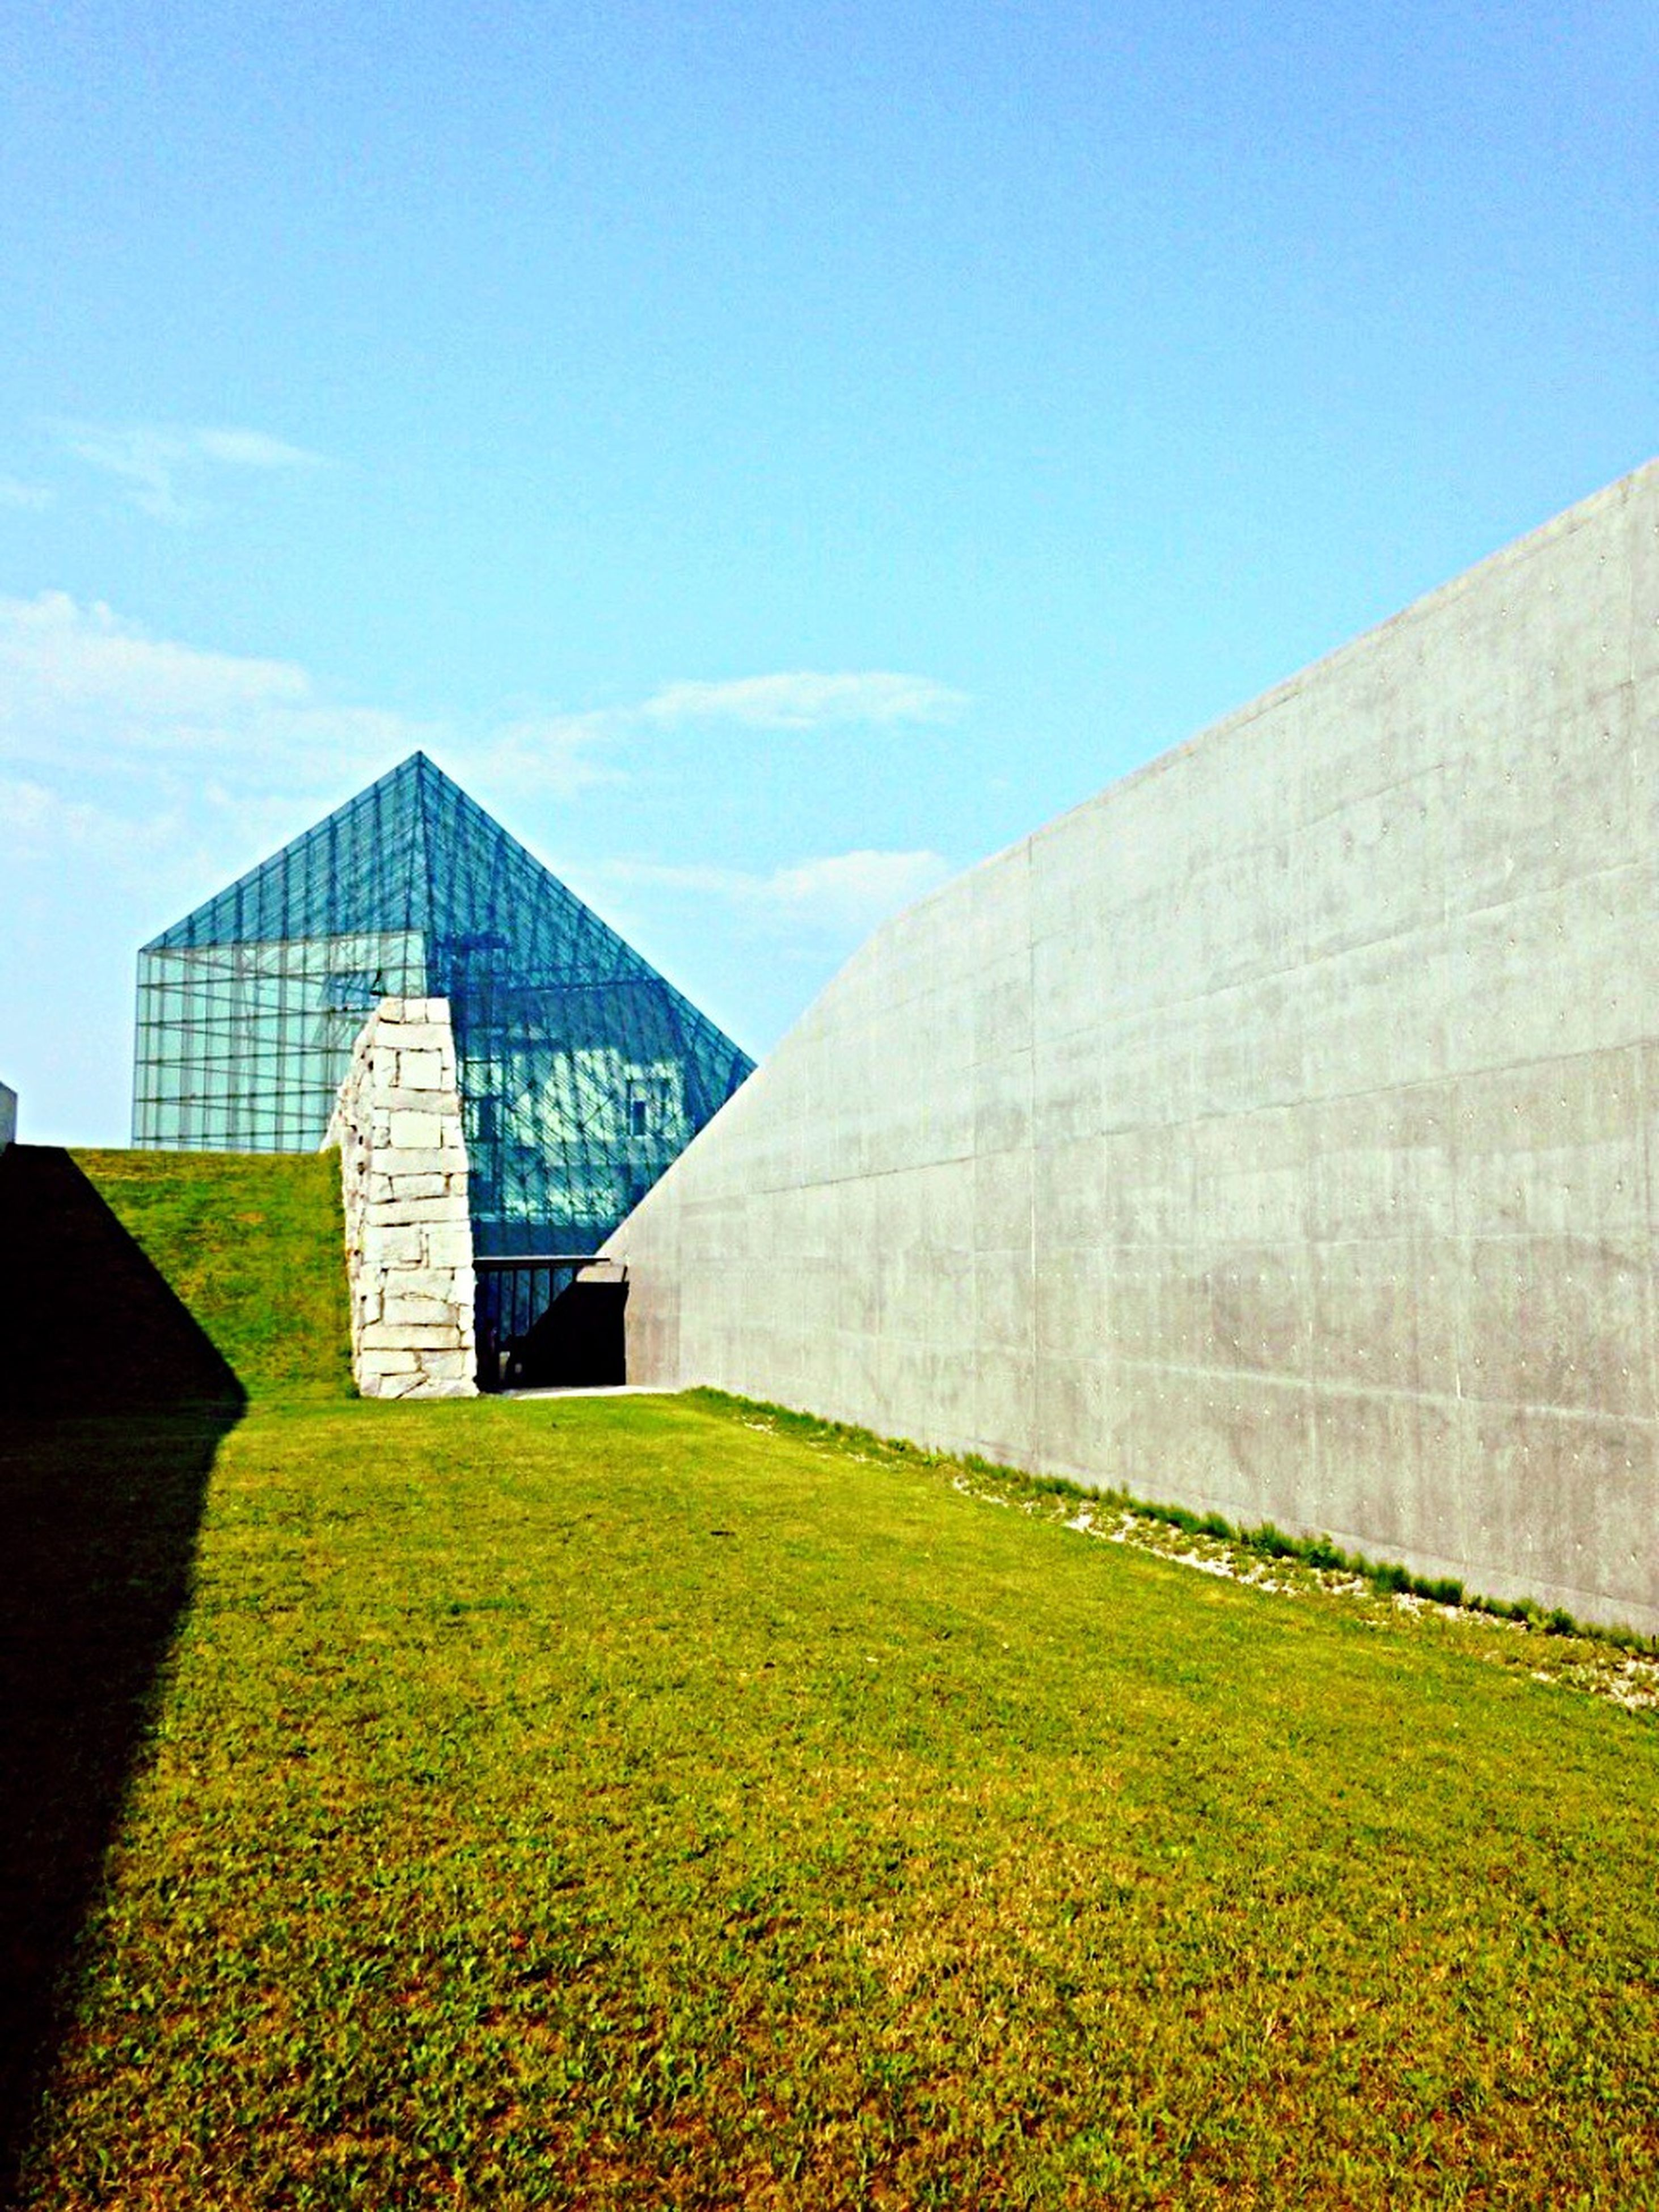 architecture, built structure, building exterior, grass, sky, tower, blue, sunlight, day, clear sky, green color, field, travel destinations, famous place, outdoors, no people, tree, copy space, low angle view, nature